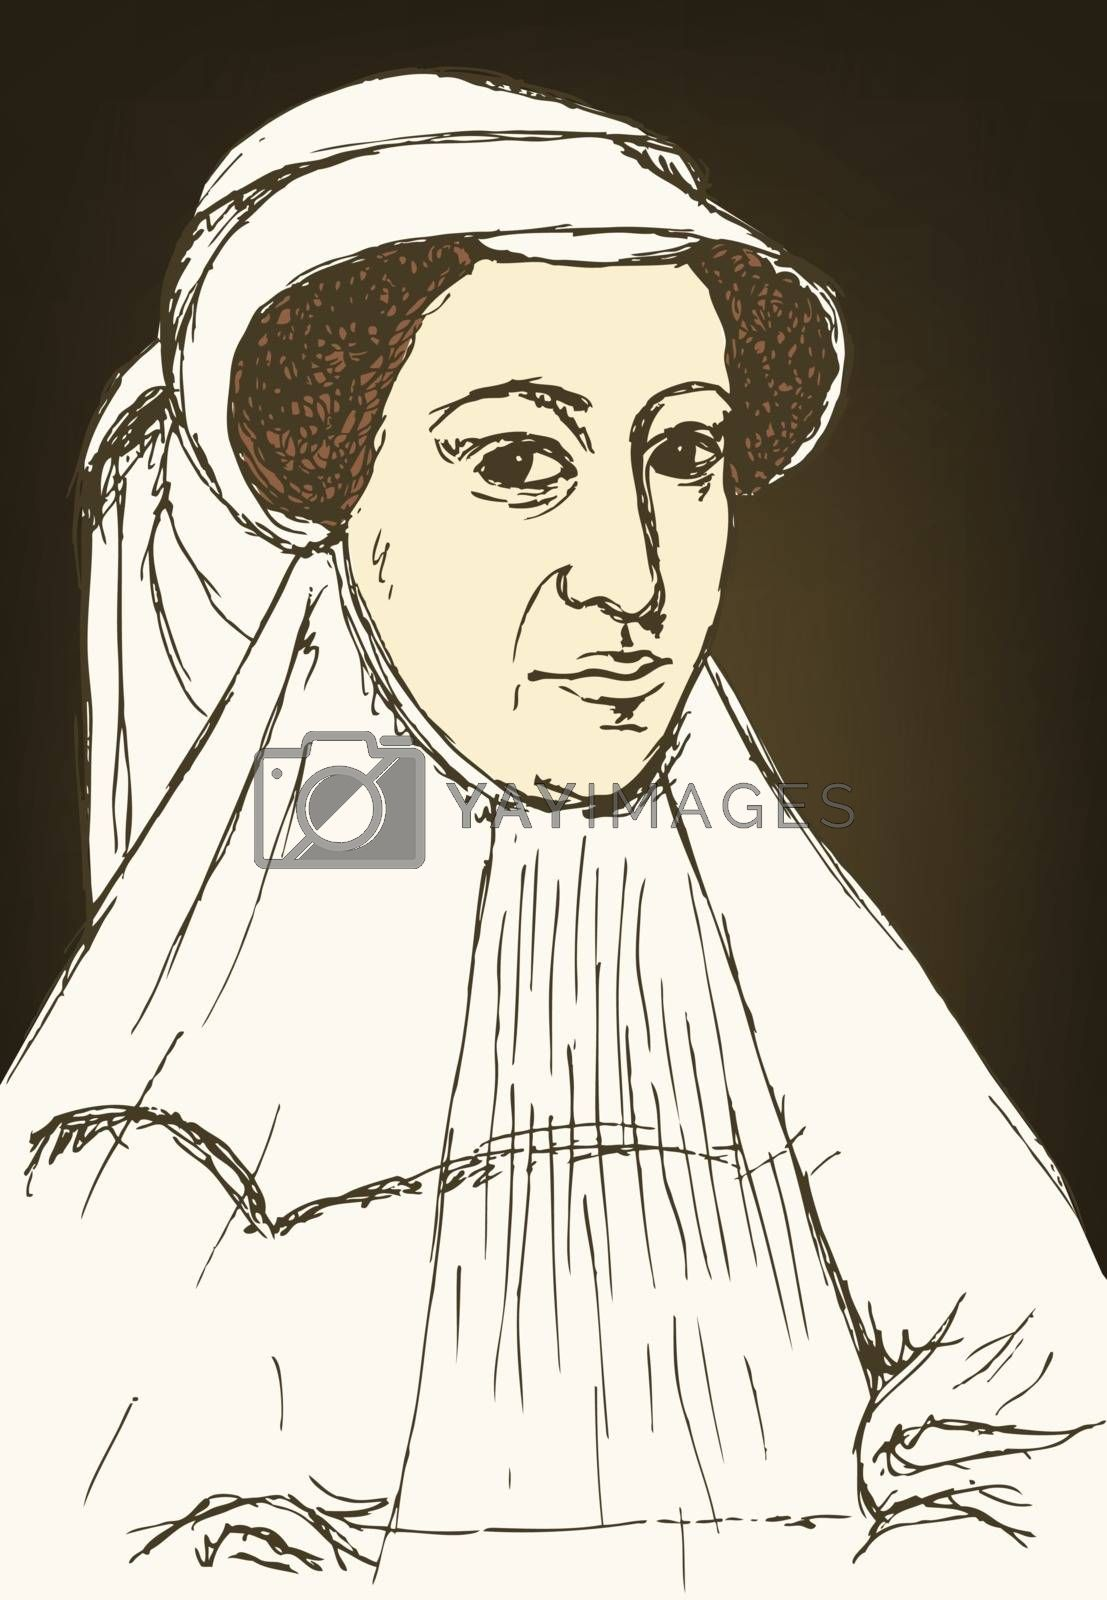 Sketch Mary Stuart portrait in vintage style, vector